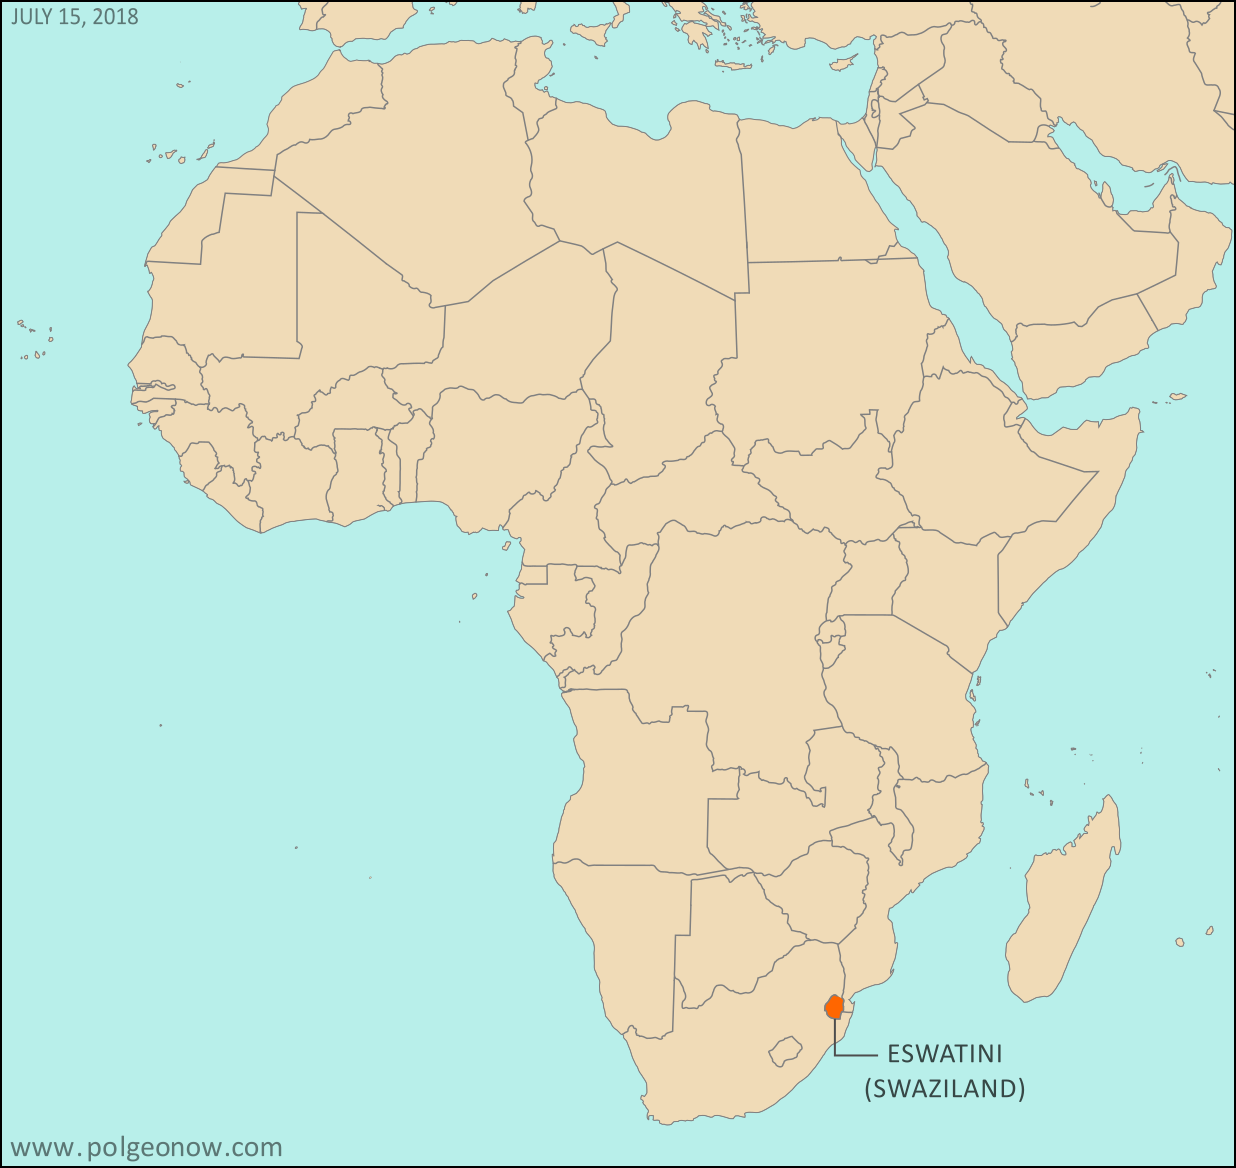 All About Swaziland's Name Change (With Maps) - Political ... on blank map of usa east coast, blank map of kosovo, blank map of commonwealth of independent states, blank map of us virgin islands, blank map of bahrain, blank map of western sahara, blank map of palau, blank map of rodrigues, blank map of u.s.a, blank map of latvia, blank map of gabon, blank map of tortola, blank map of st kitts, blank map of comoros, blank map of st martin, blank map of northern mariana islands, blank map of sao tome and principe, blank map of indian ocean islands, blank map of asia region, blank map of the czech republic,